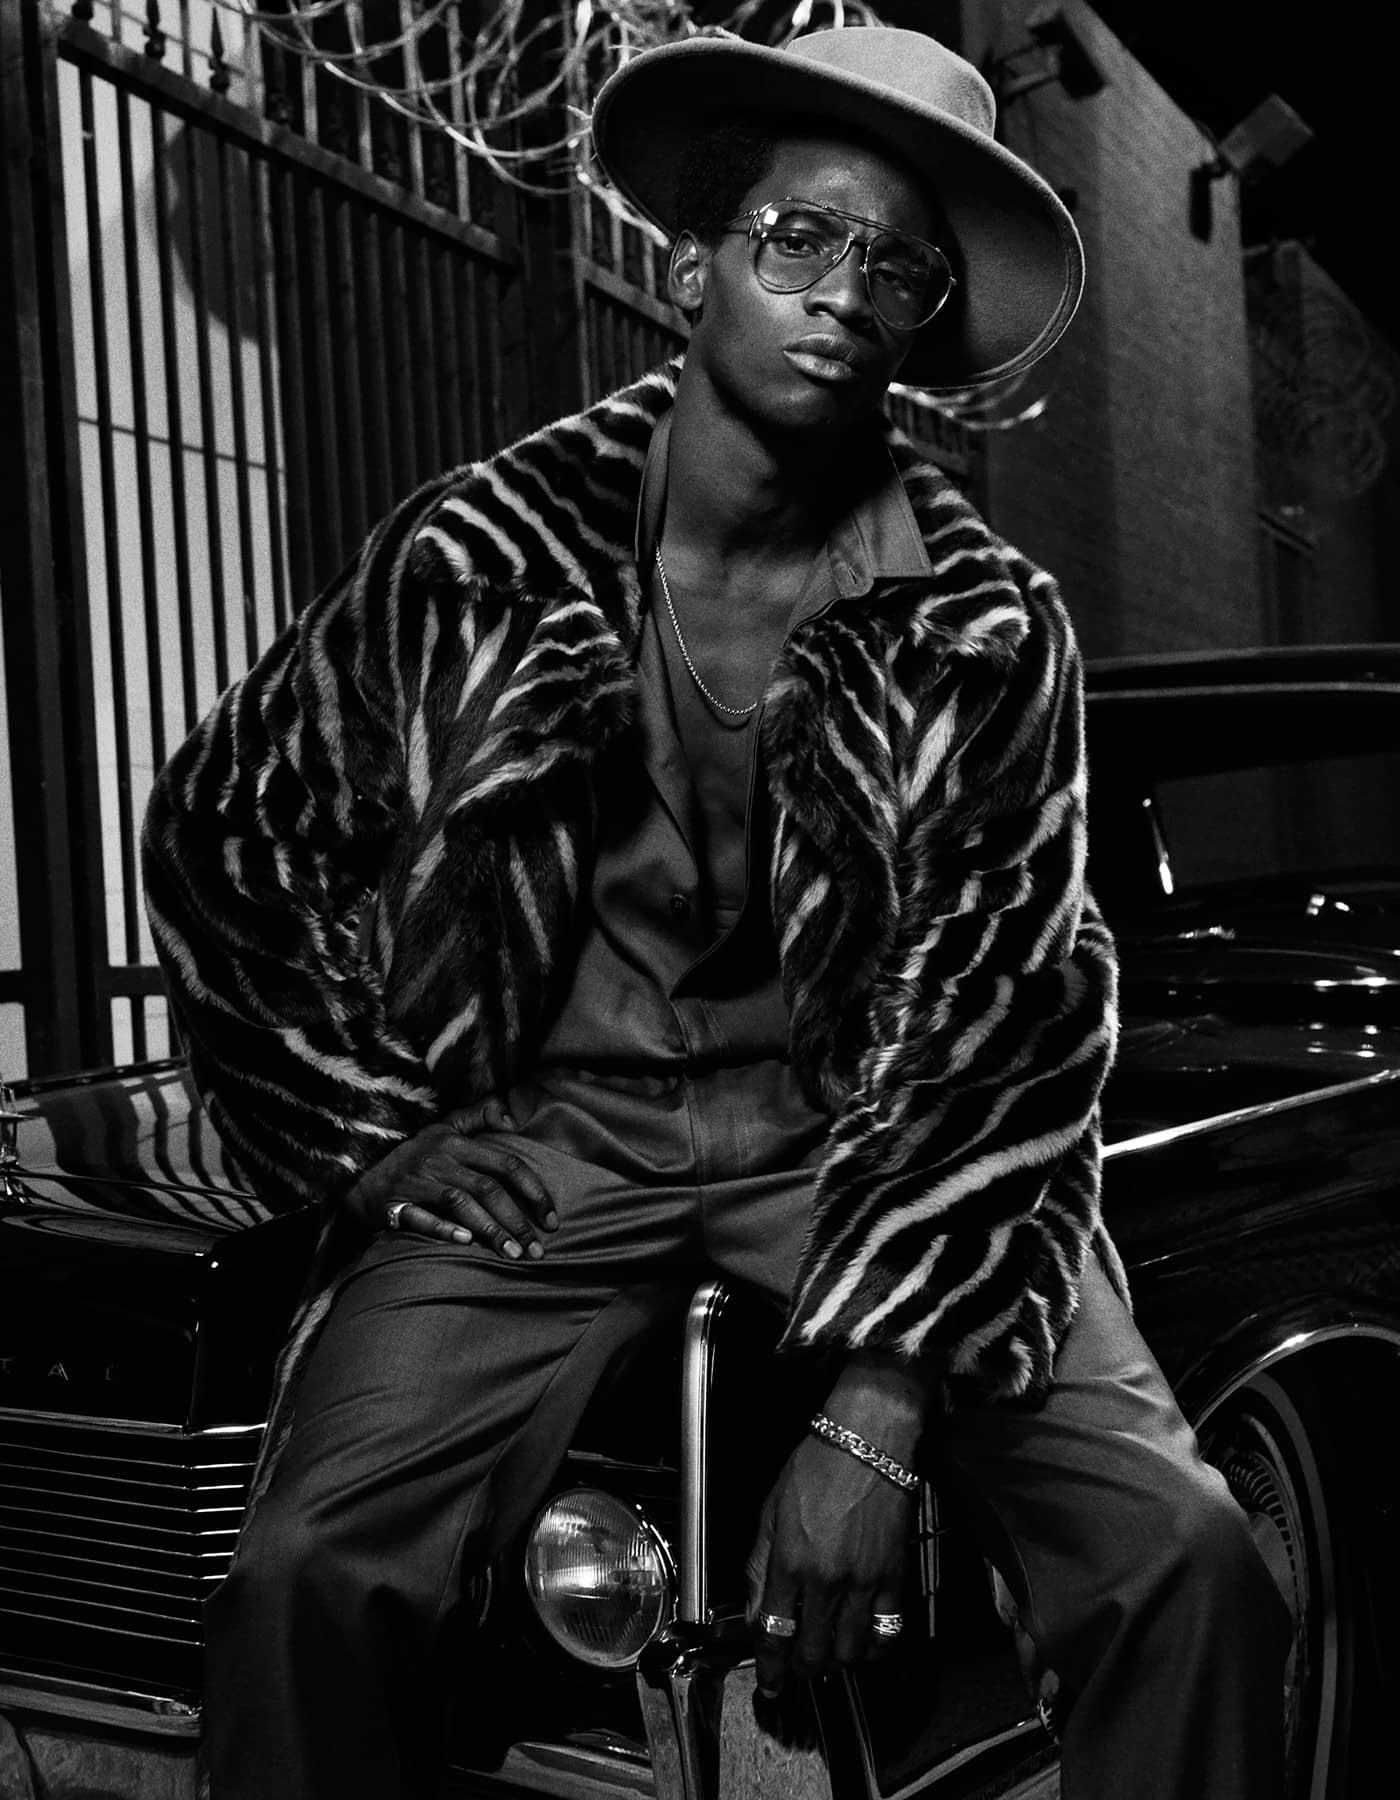 marie-claire-september-2017-04-adonis-bosso-by-francois-nars.jpeg